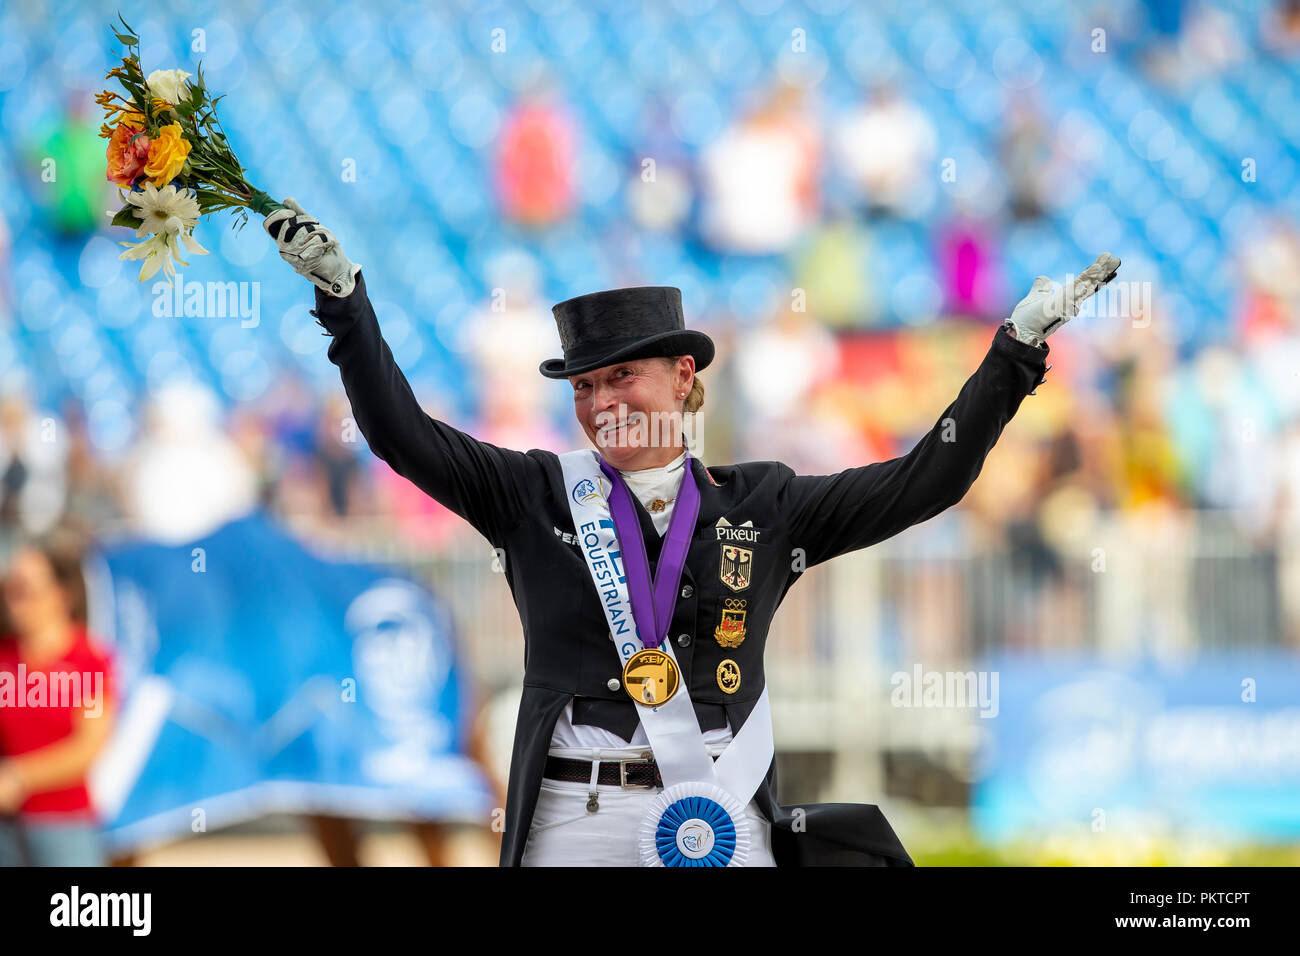 Tryon, USA. 14th Sep, 2018. Riding, FEI World Equestrian Game 2018, Grand Prix Special: Isabell Werth celebrates her victory on the podium. Credit: Stefan Lafrentz/dpa/Alamy Live News Stock Photo